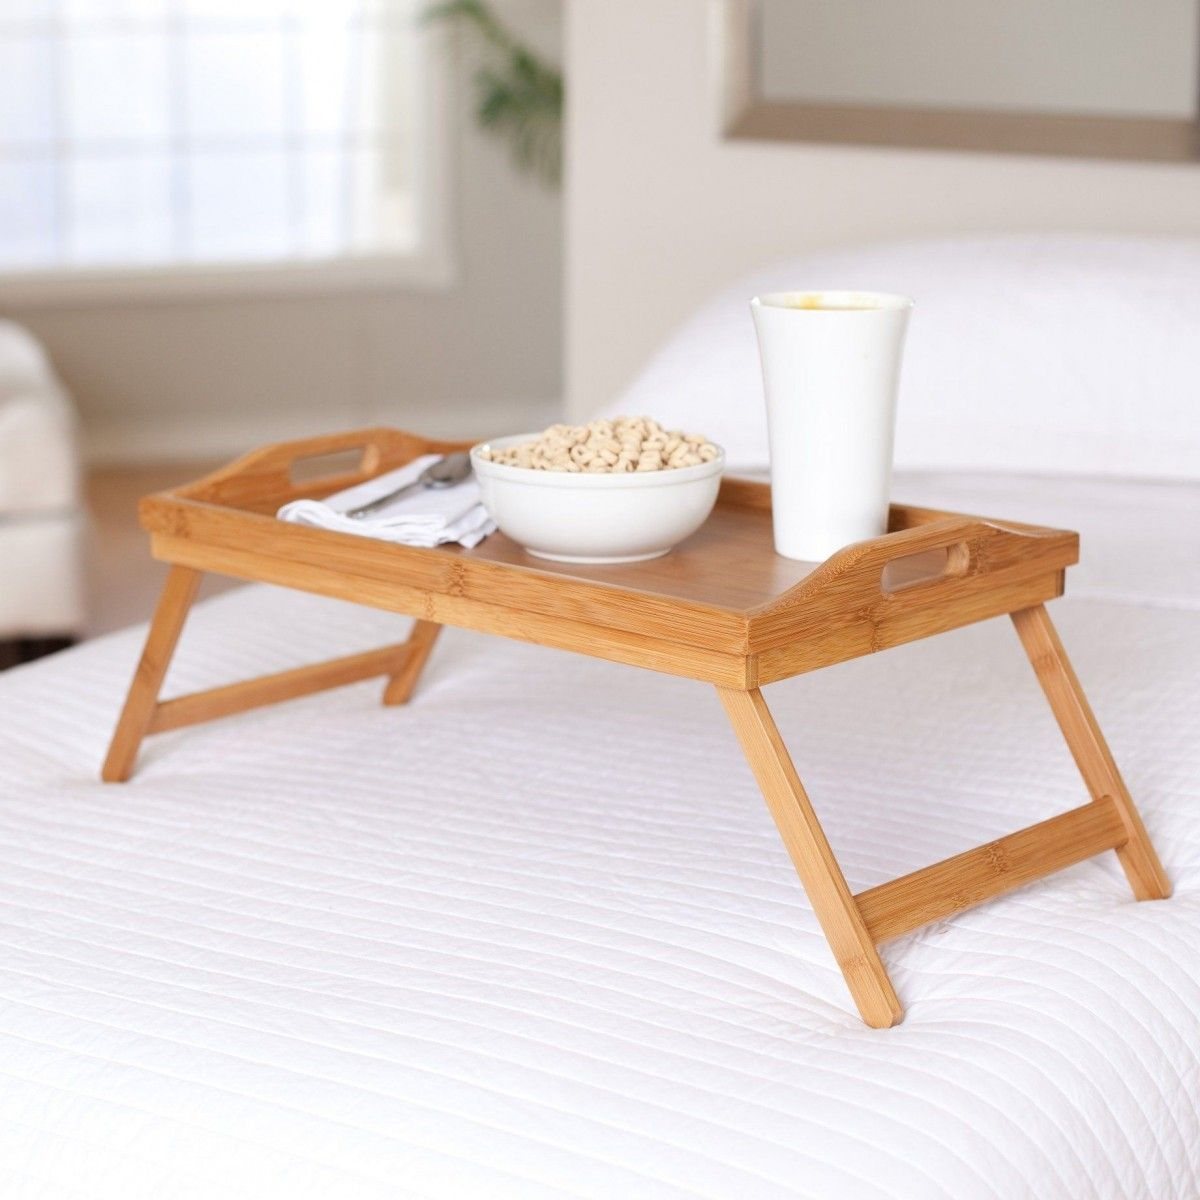 Overbed Table (Bed Tray). Expanding Functionality Element in Modern Home. Foldout light wooden tray for breakfast